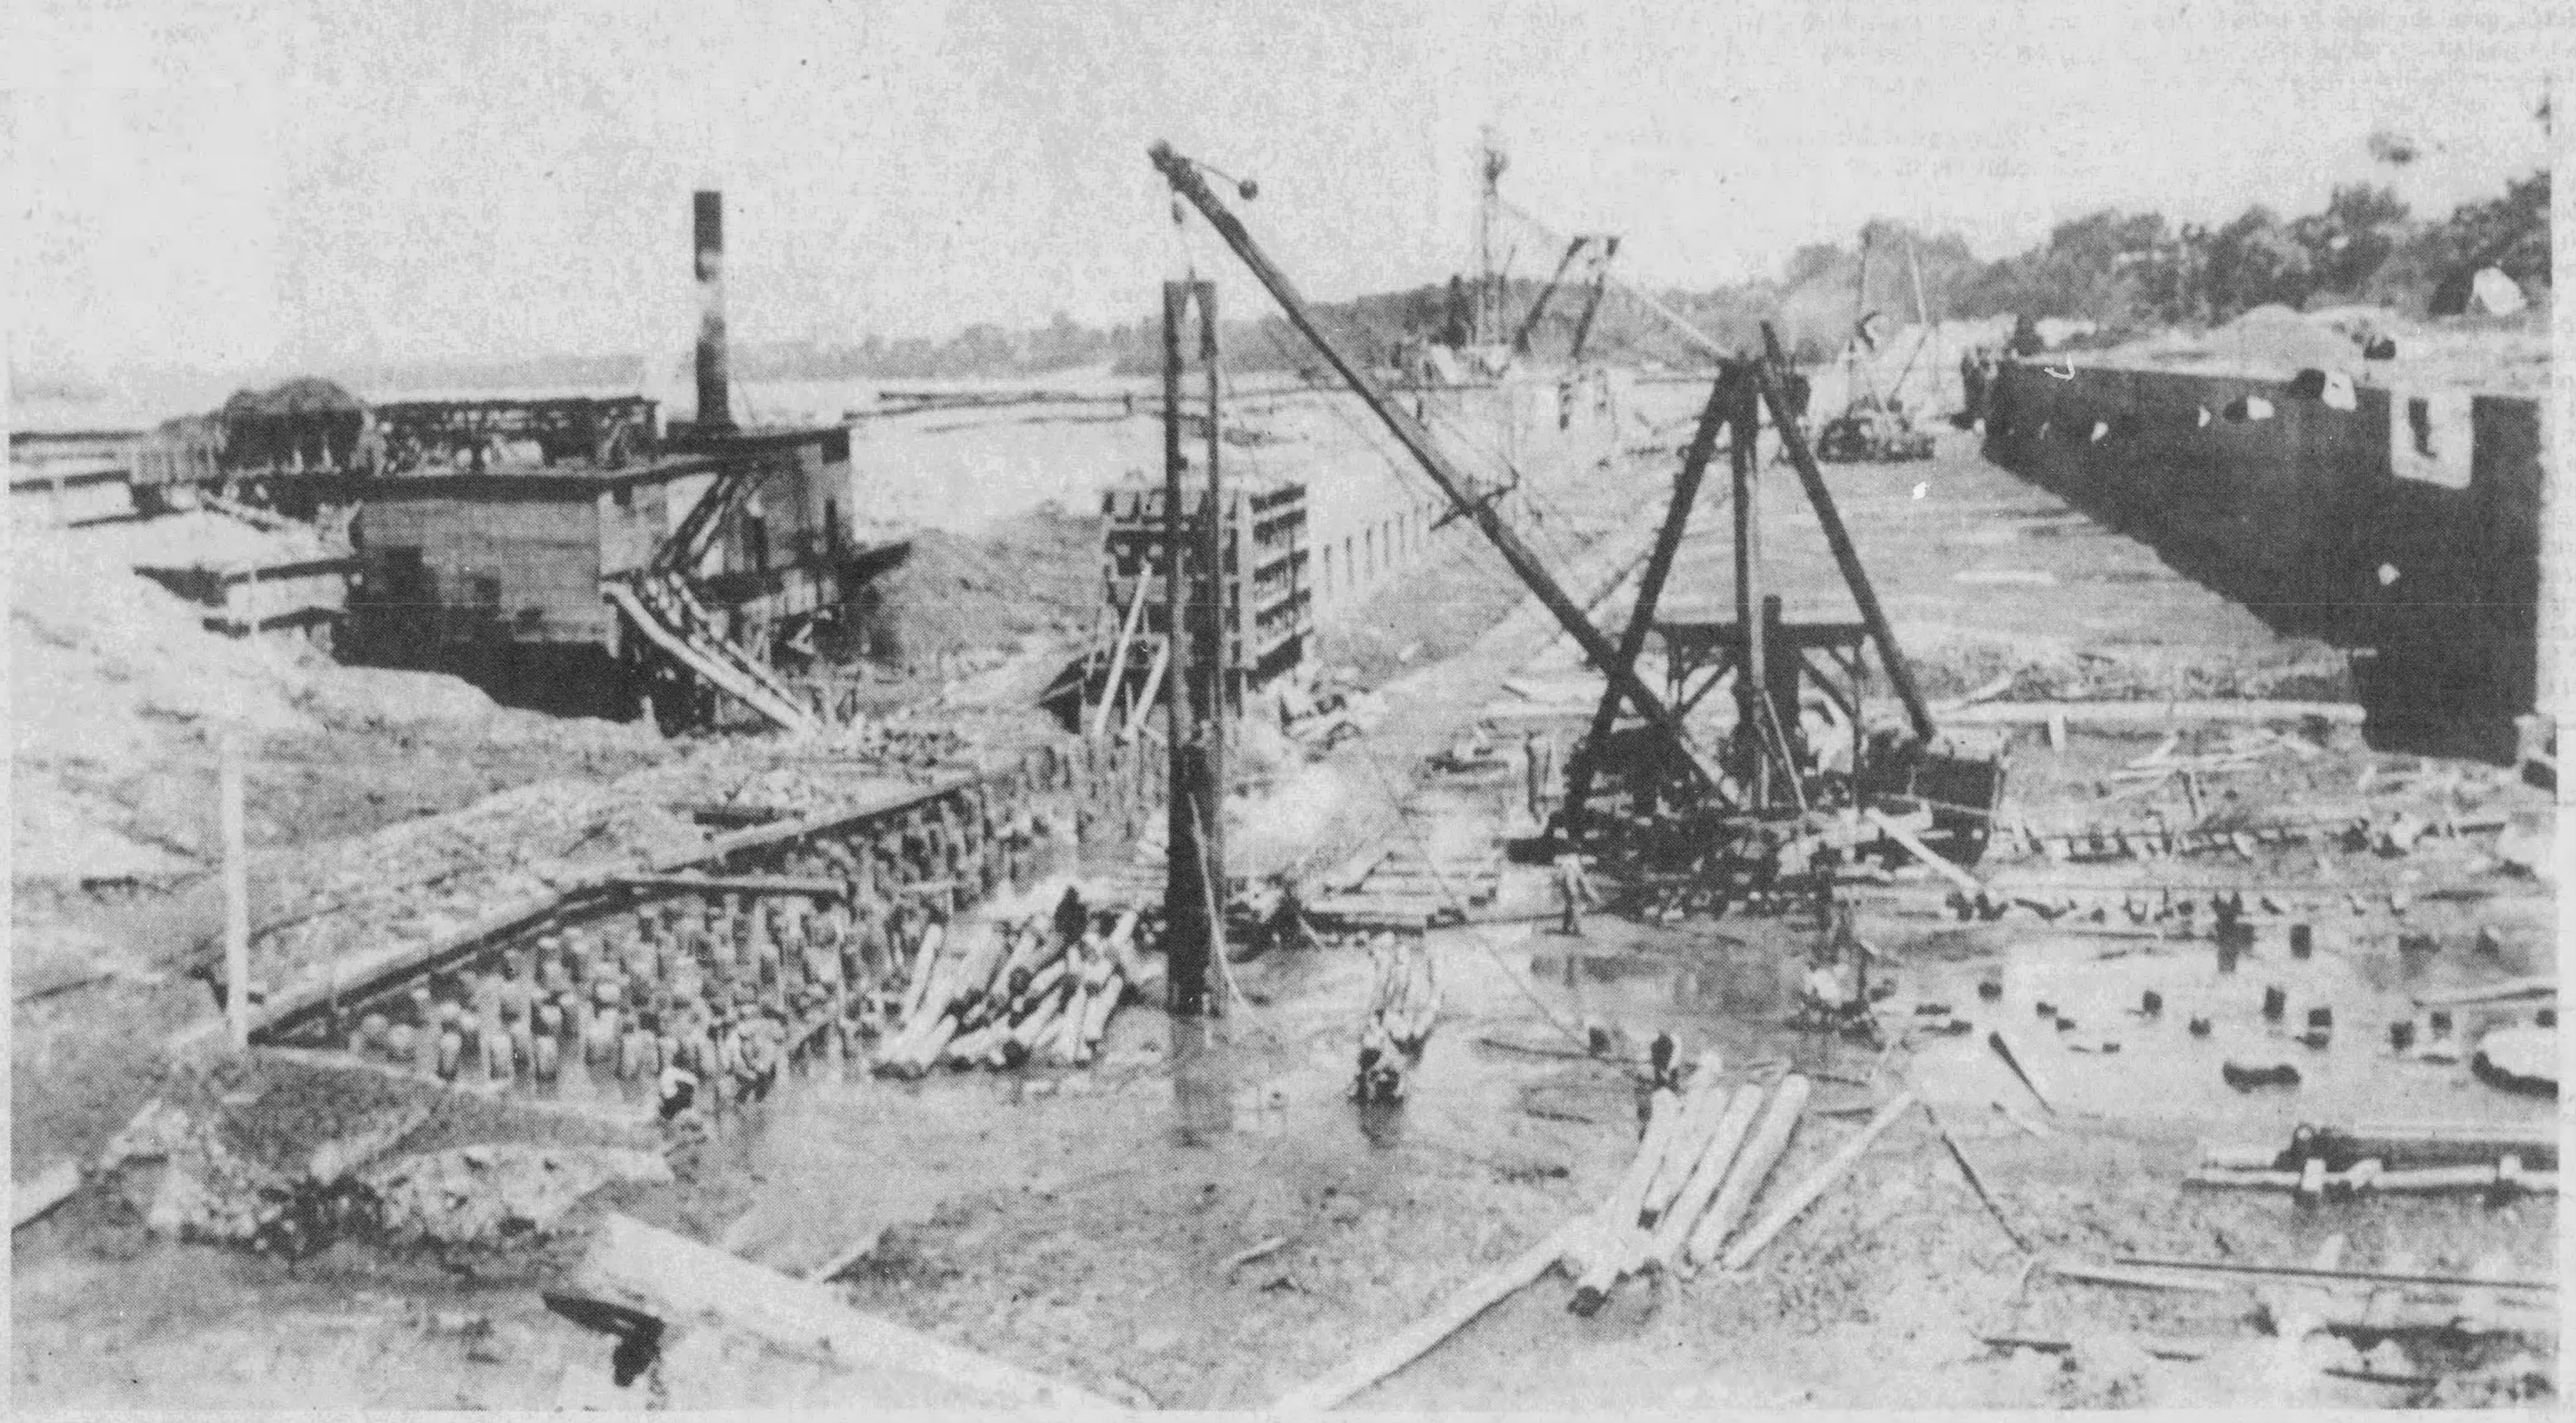 Construction work on the locks, 1923-1928